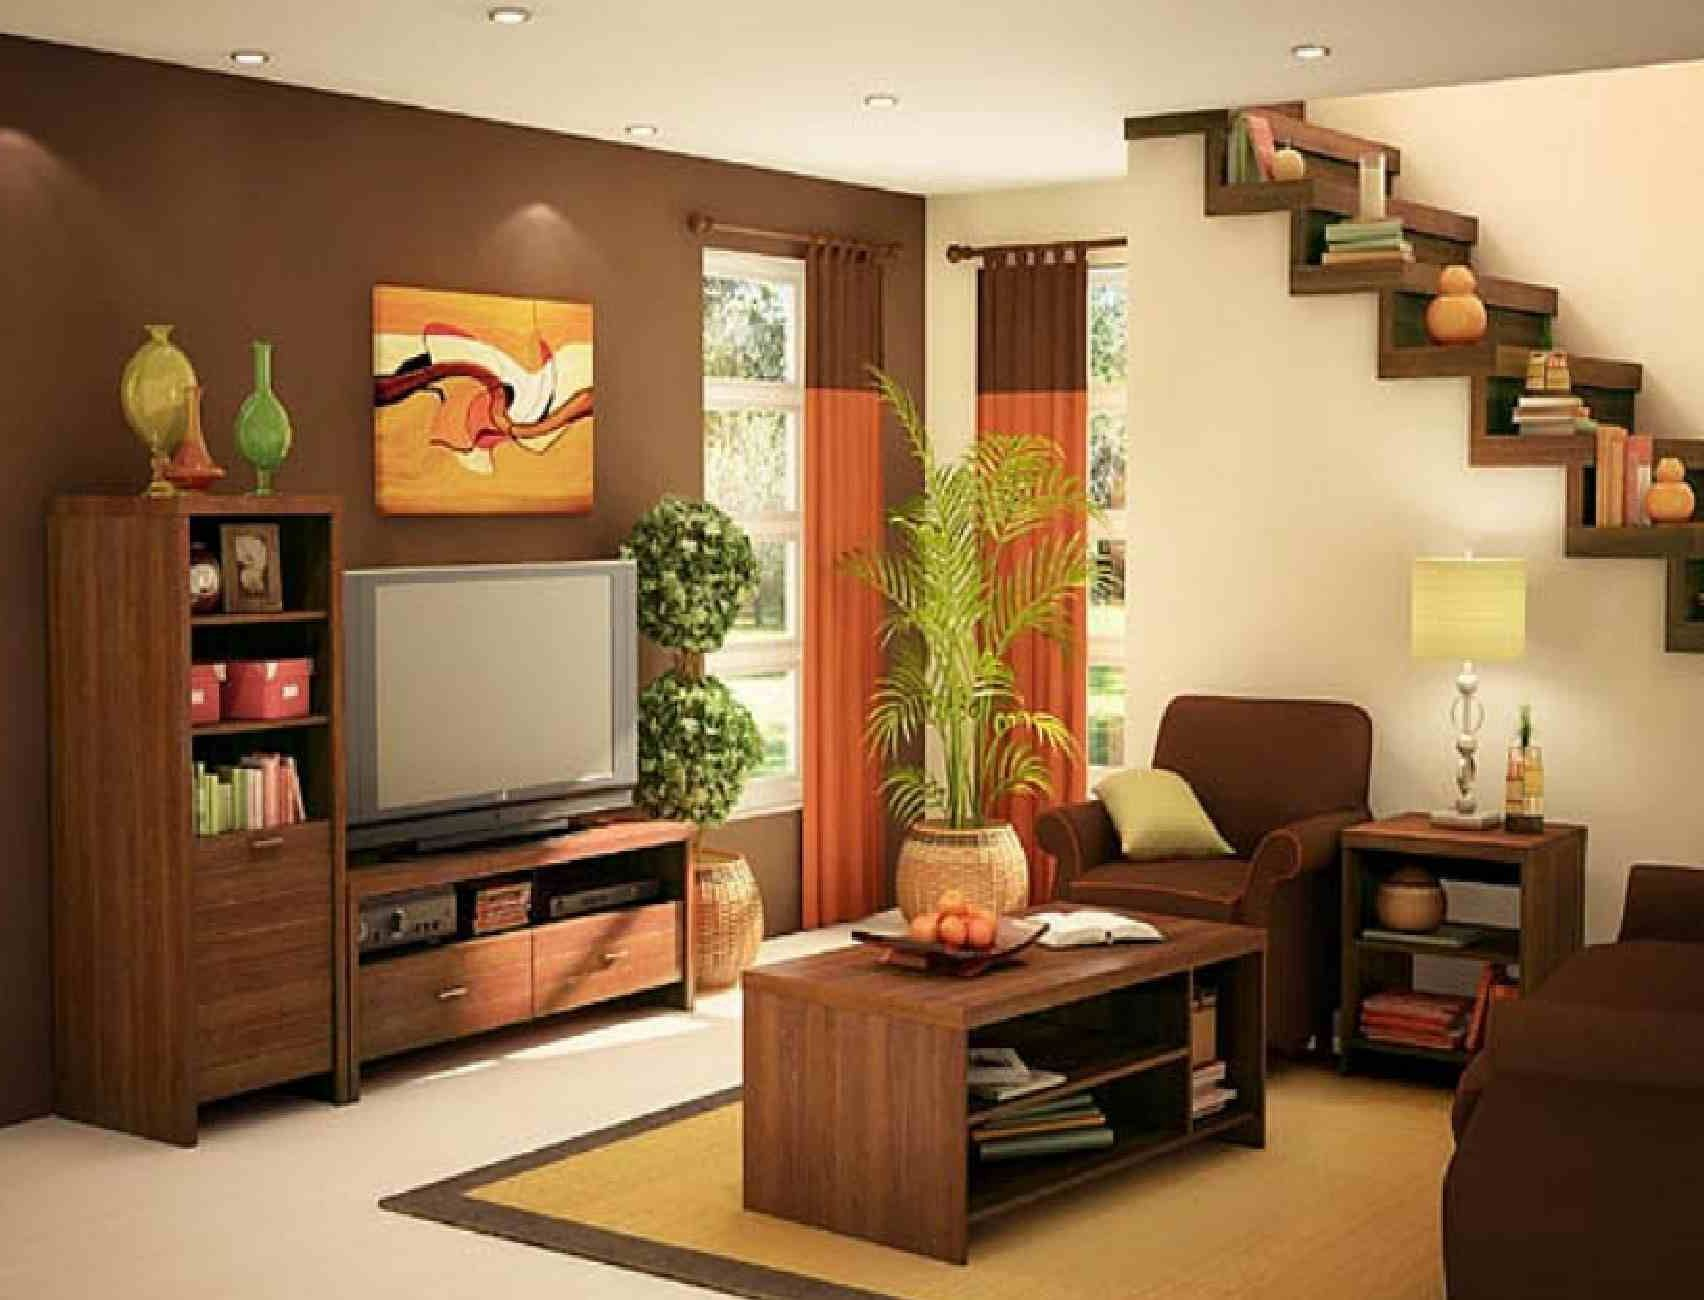 Small Drawing Room Interior Design Indian In 2020 Small House Interior Small House Interior Design Simple Living Room Designs